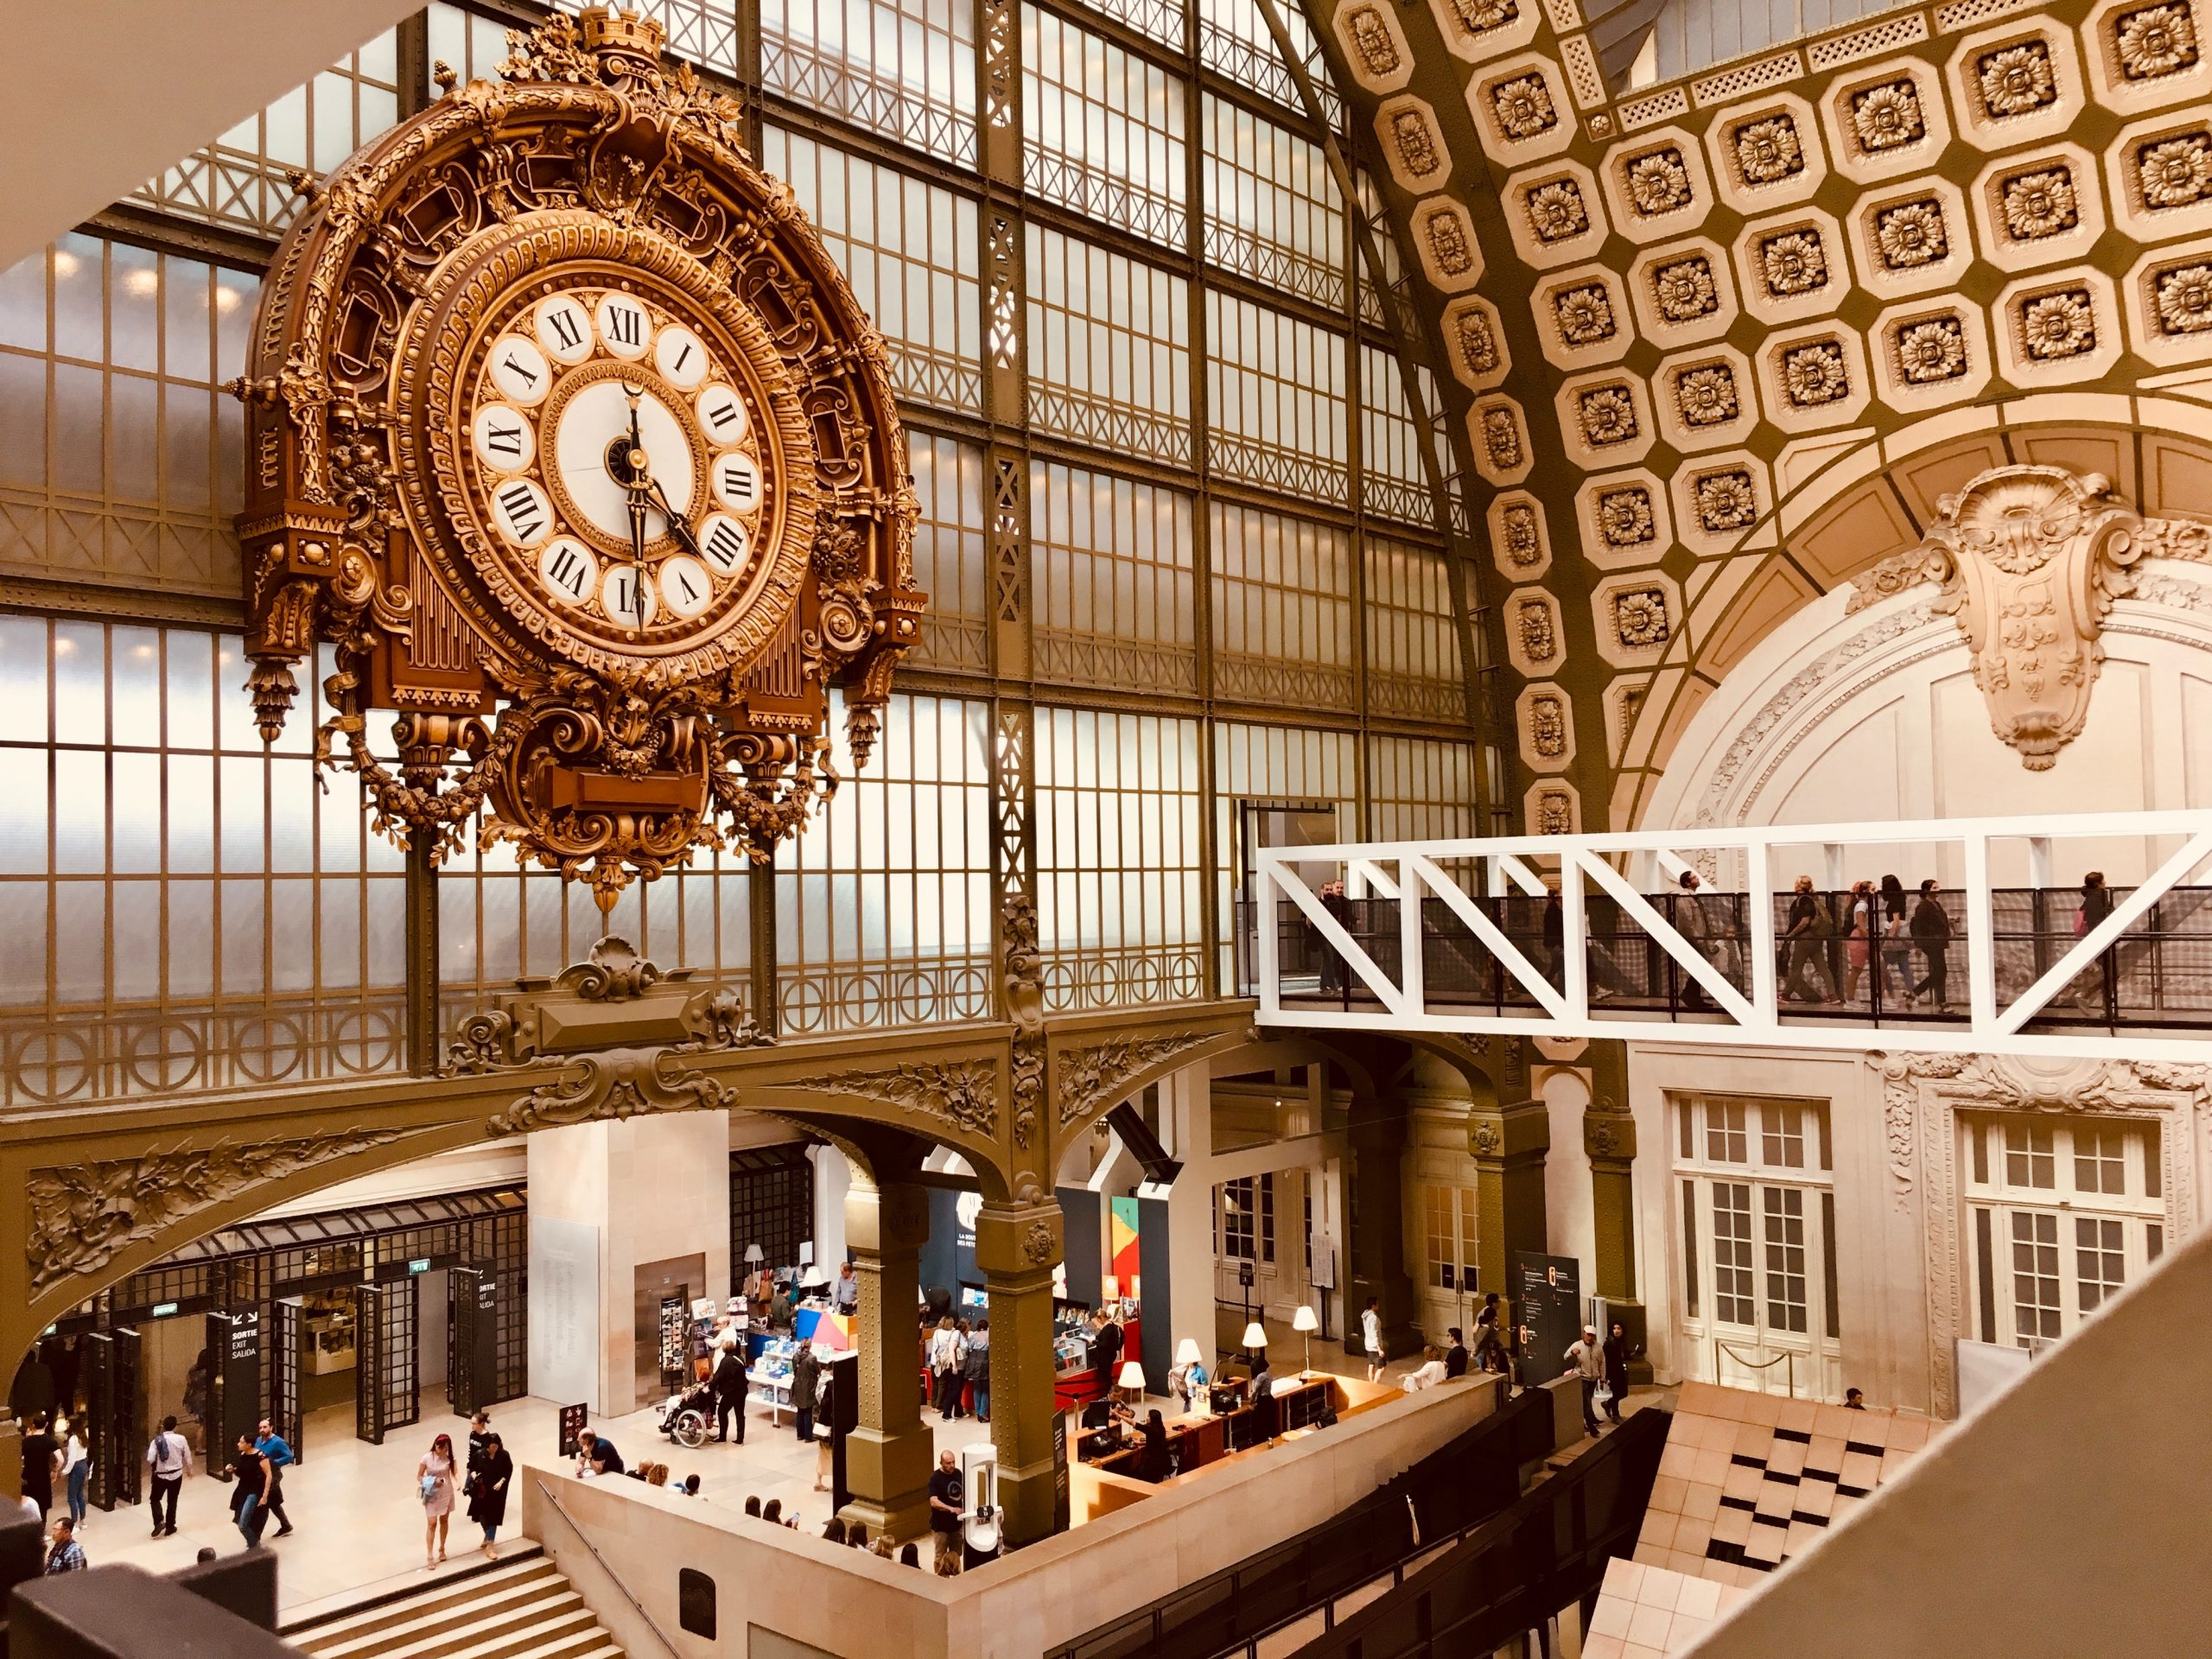 A large clock in a train station